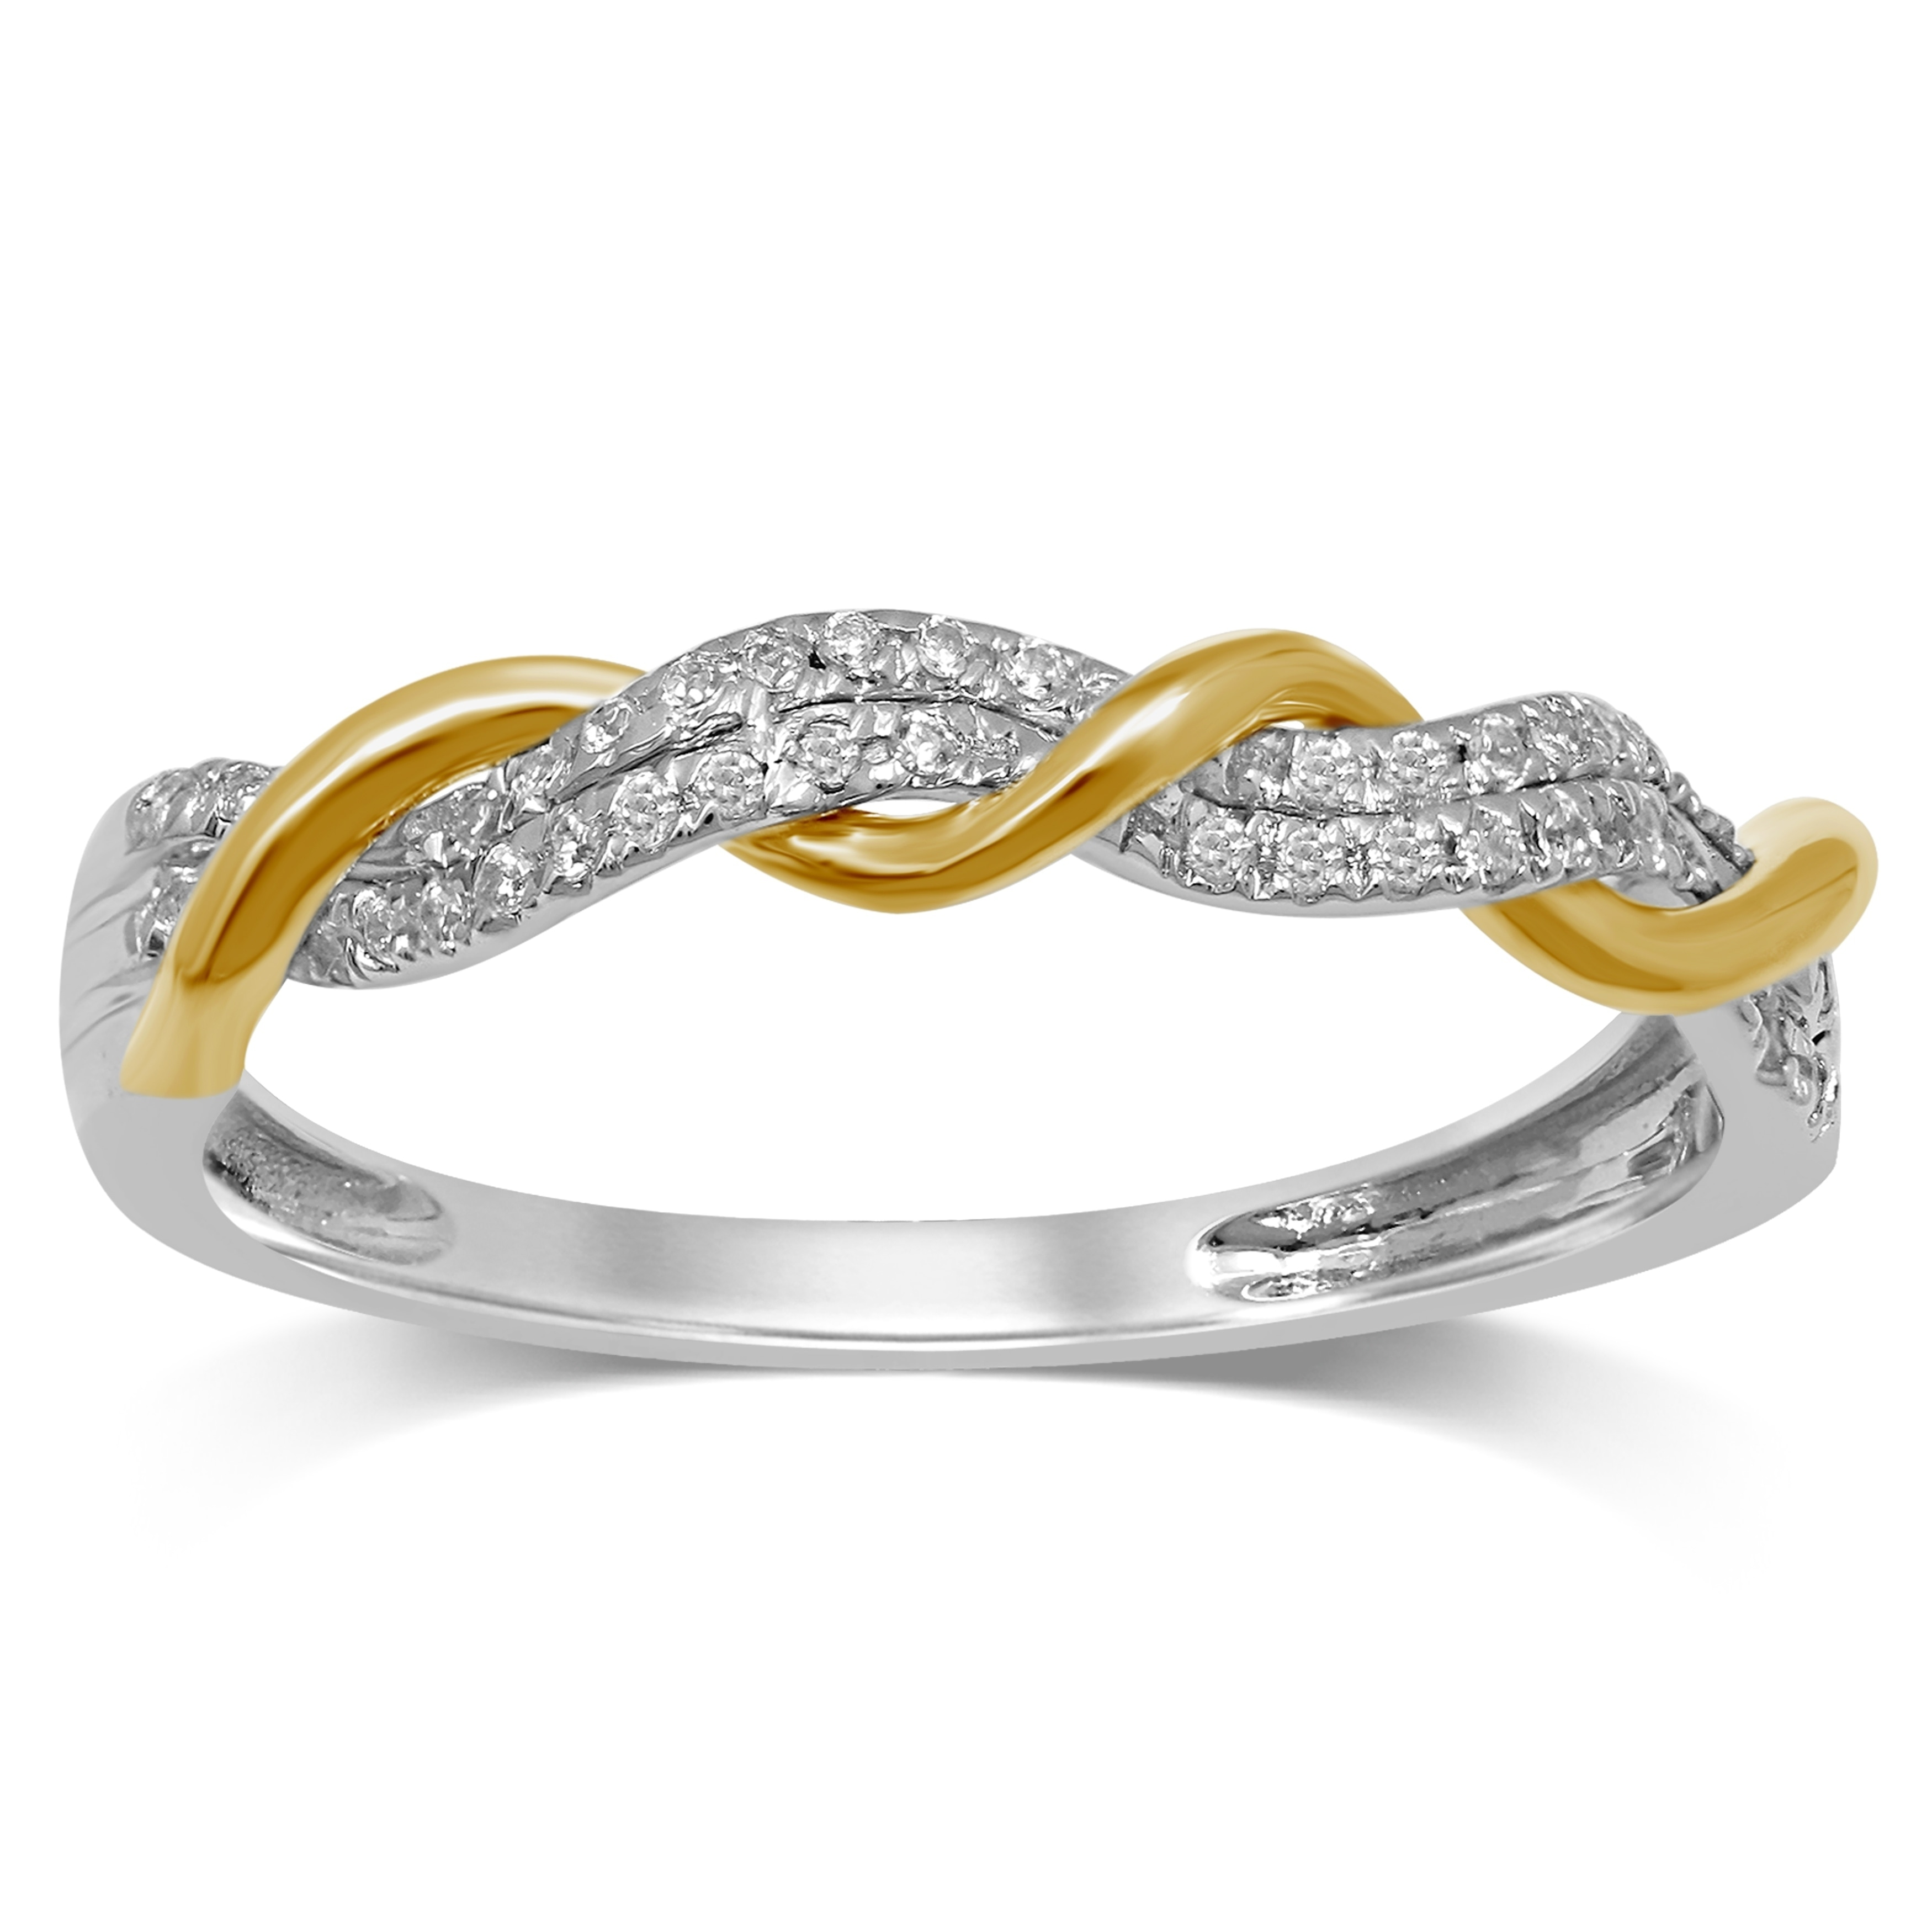 Unending Love 10k Two Tone Gold 1 10 Cttw Diamond Intertwined Wedding Band